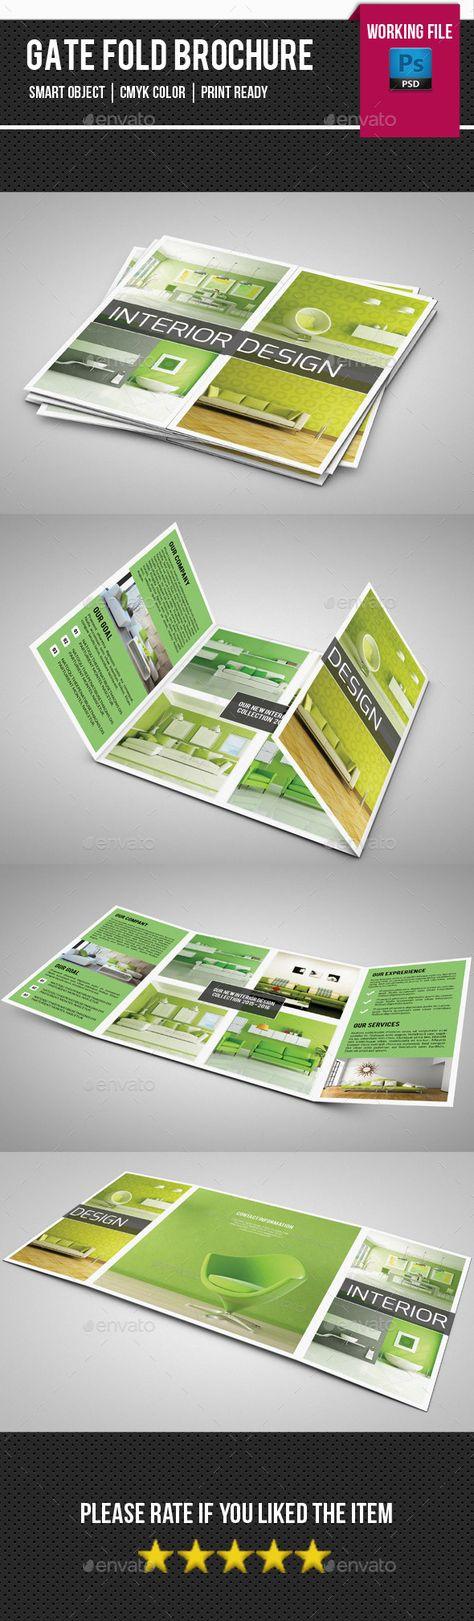 This blank brochure design can be quite ideal for use in your - blank brochure